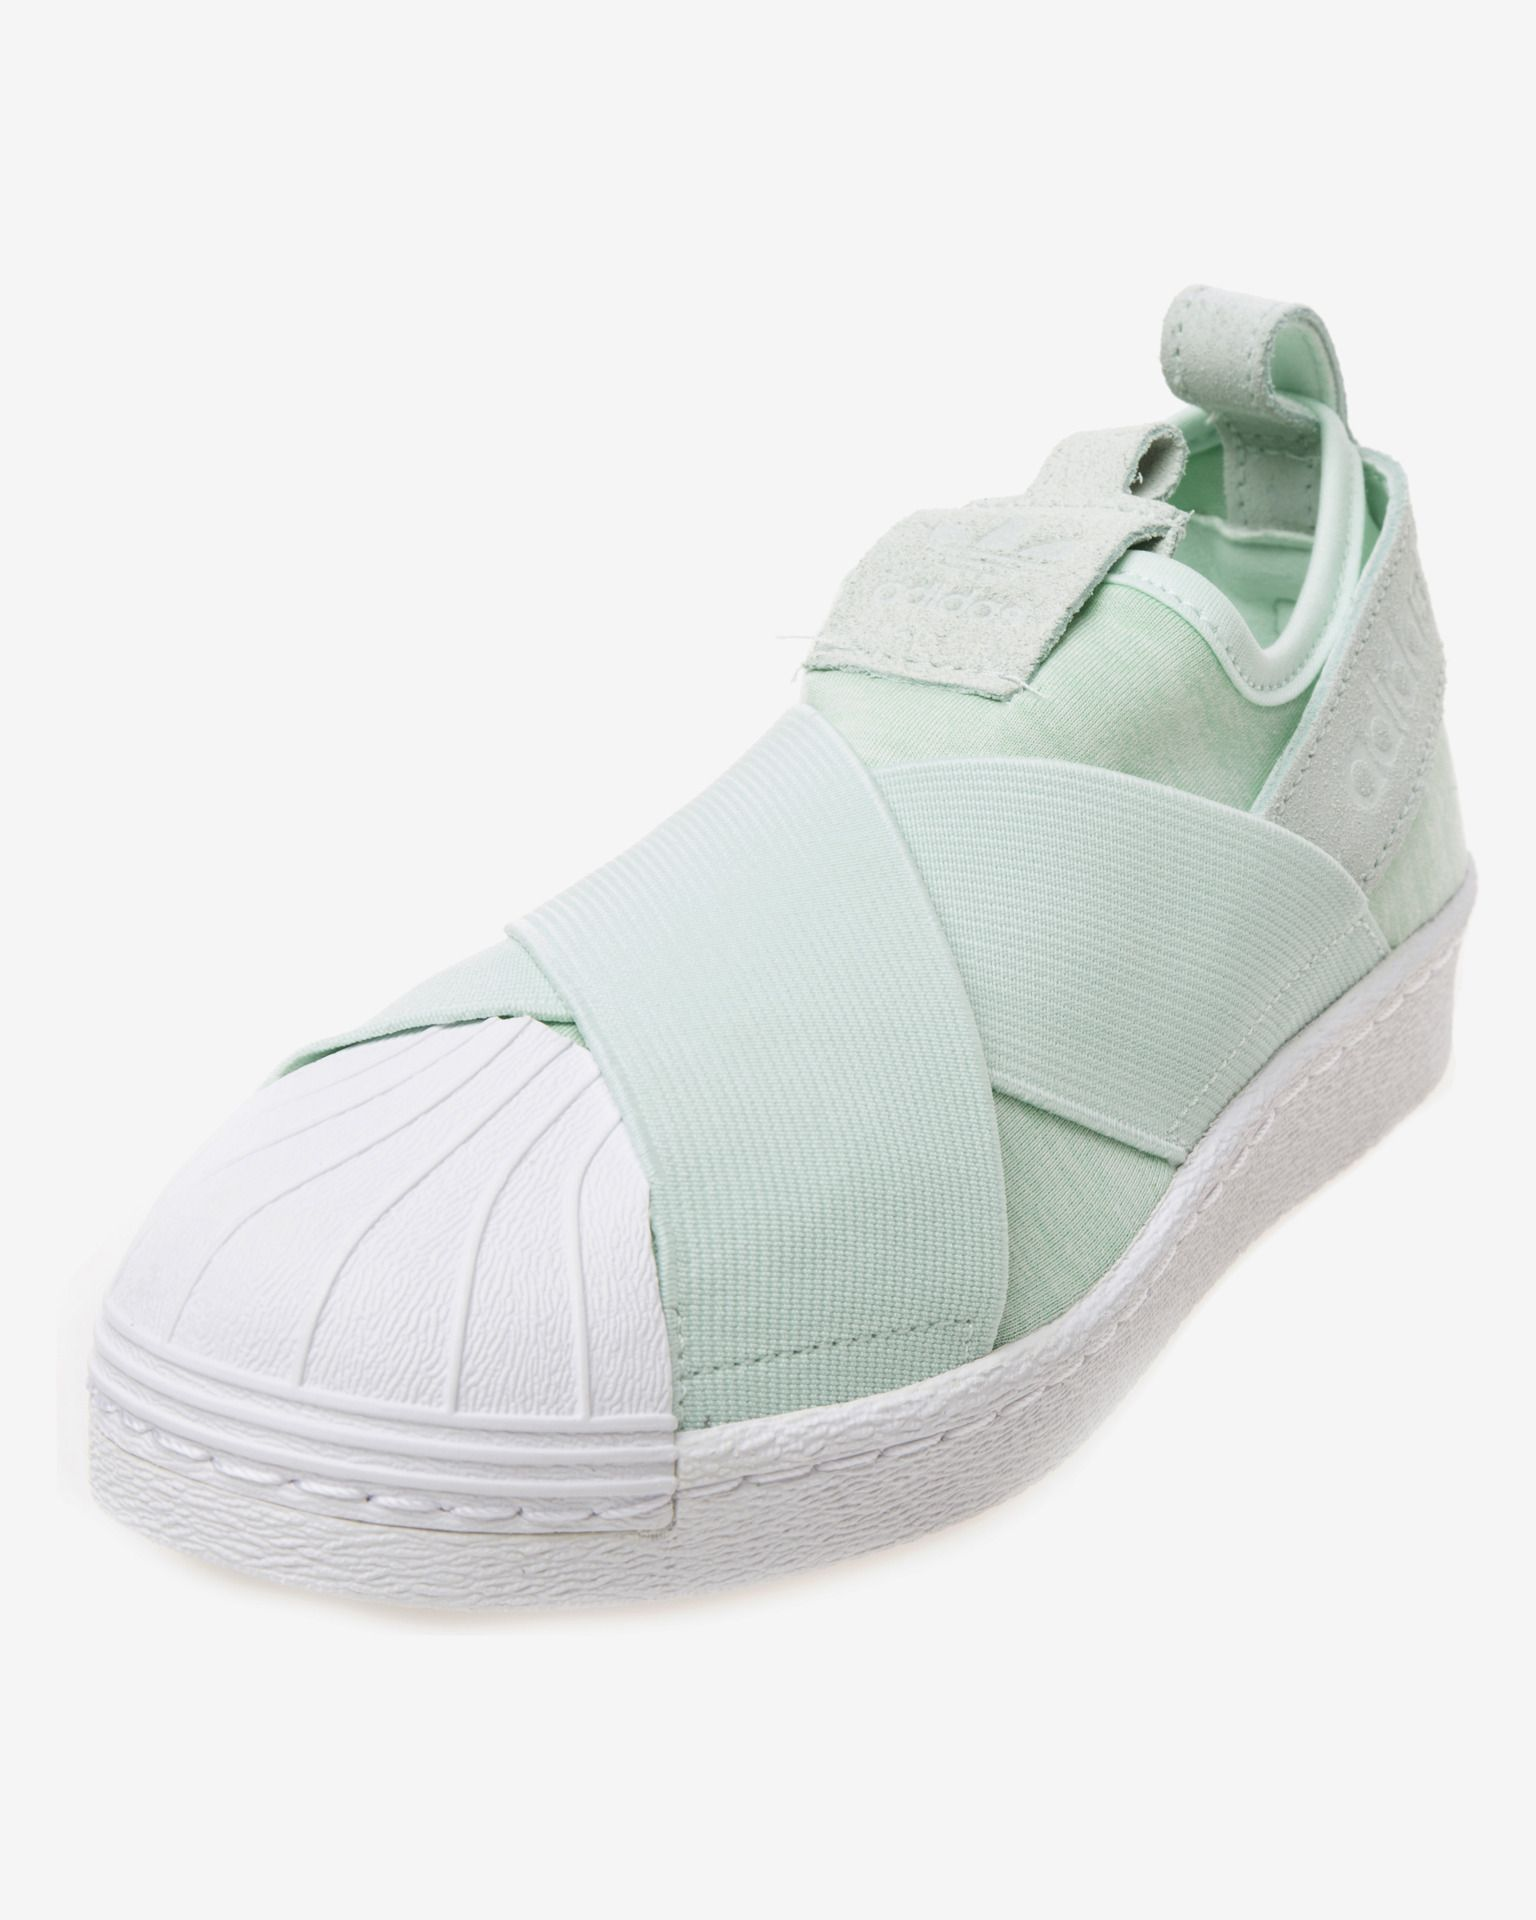 competitive price 35d9b 396f9 Adidas Originals Superstar Slip On With Strap Green White Womens Casual  Shoes